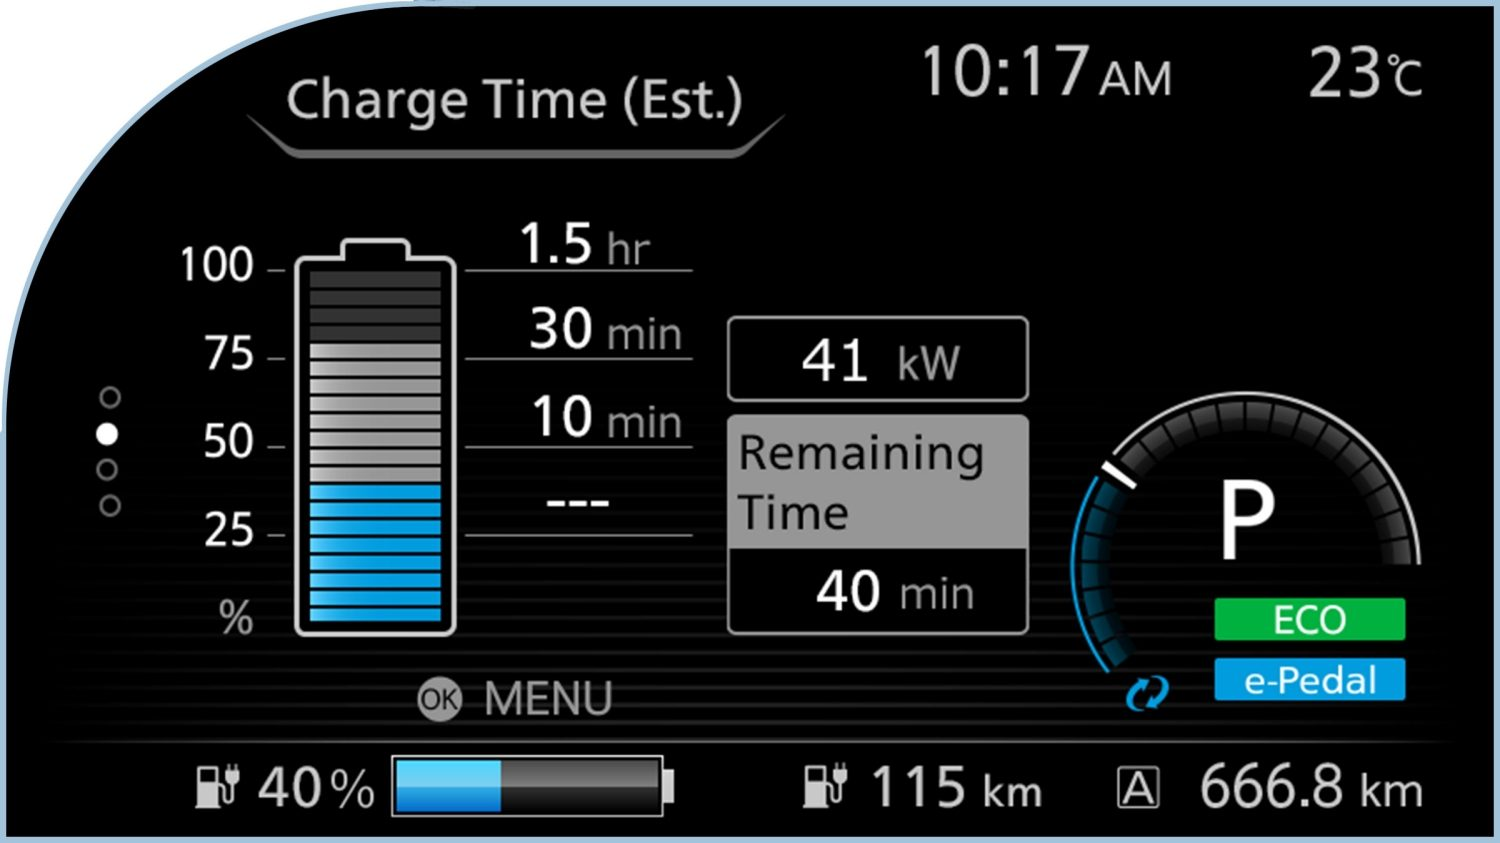 New Nissan LEAF digital information display showing range